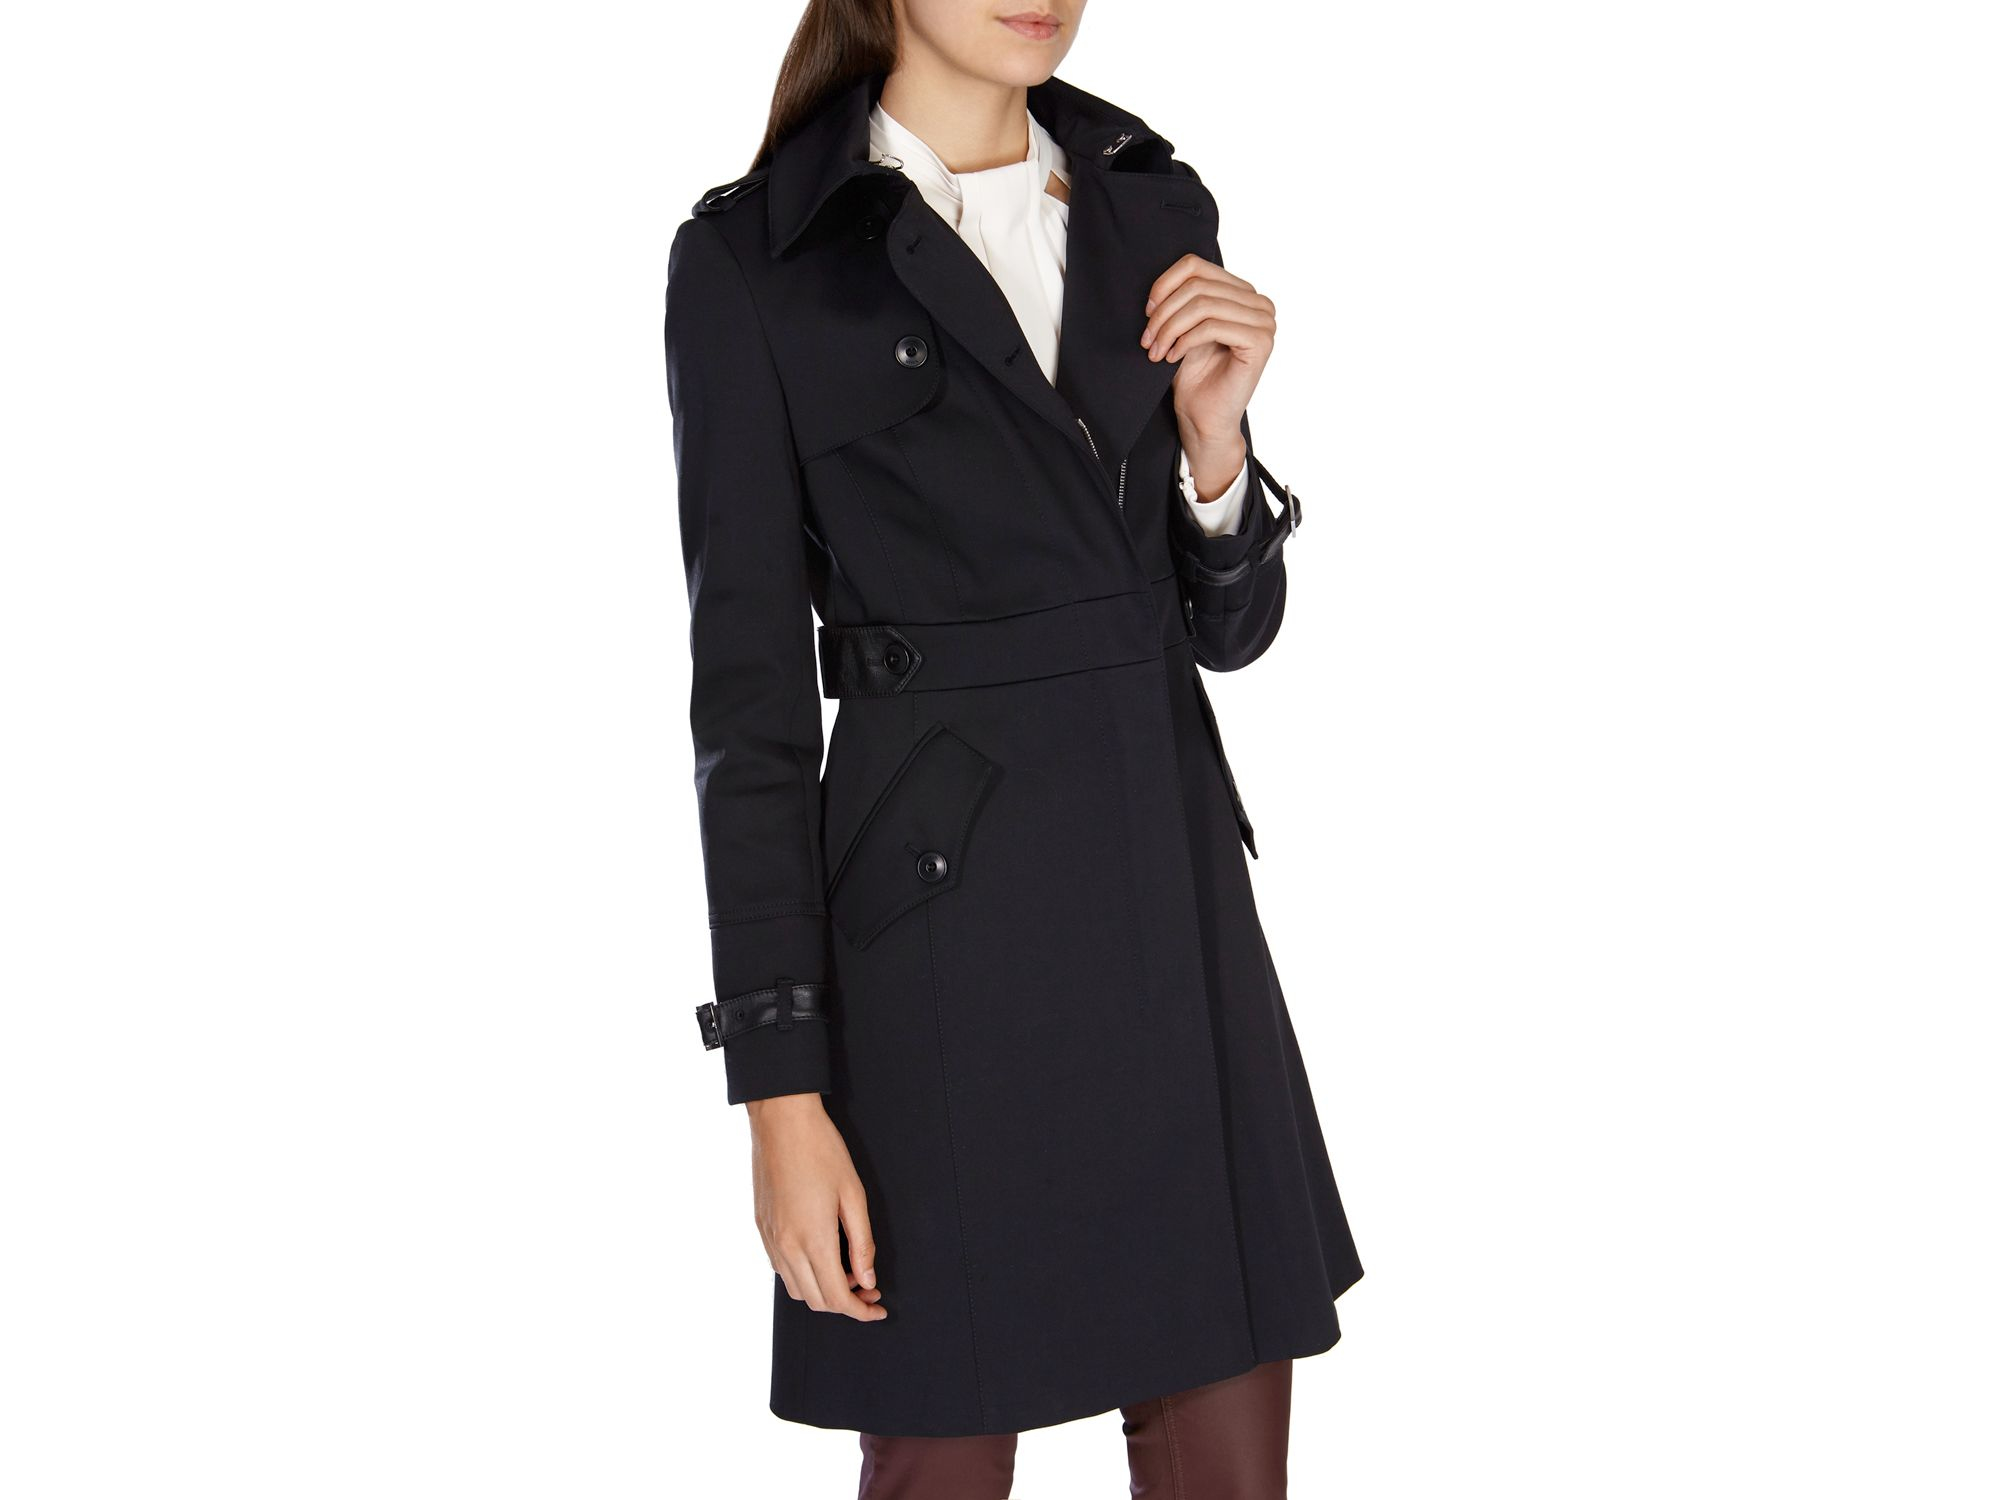 cheaper sale unparalleled high fashion Karen Millen Black Zip Front Trench Coat